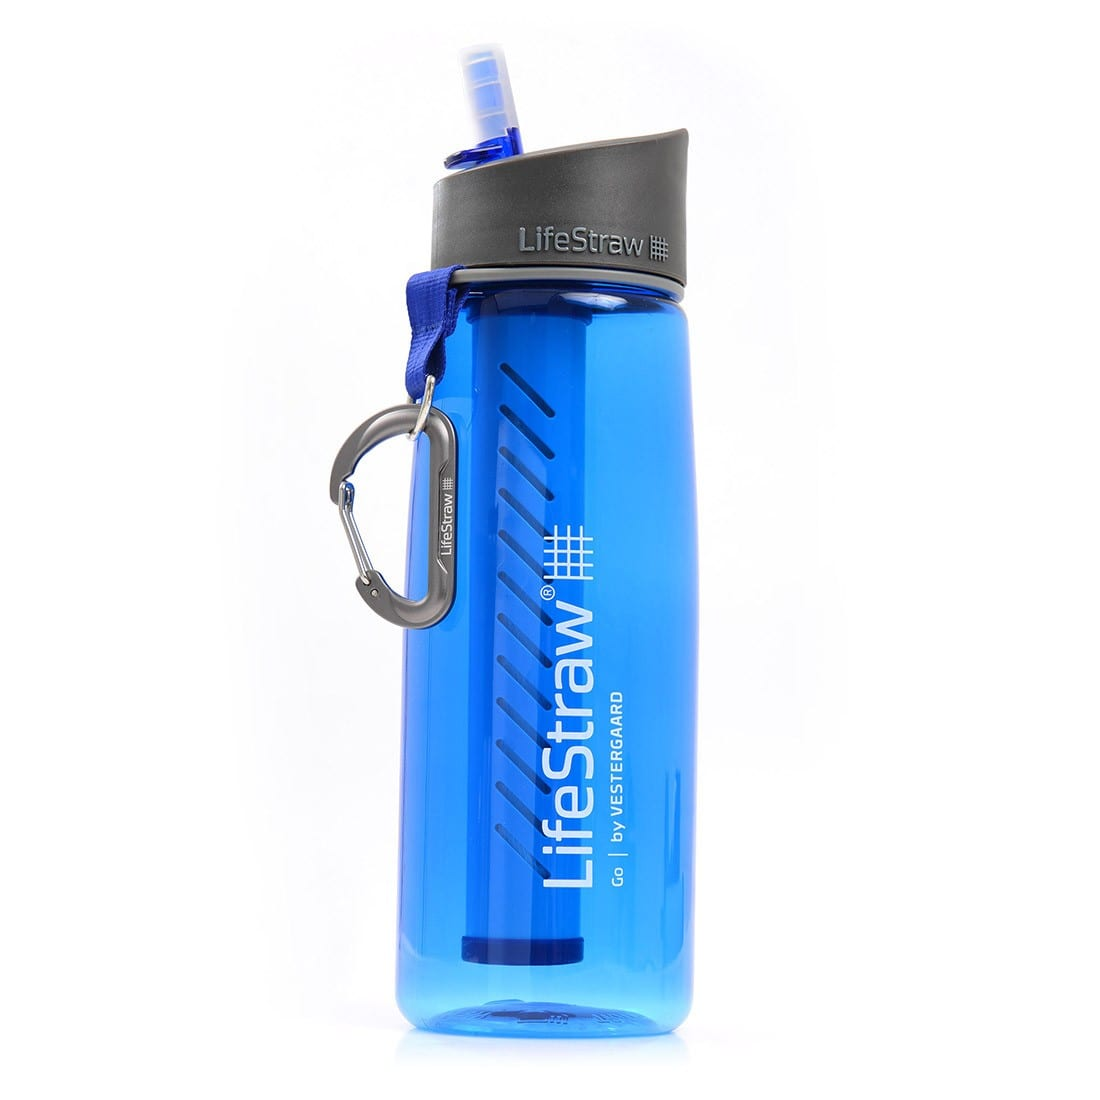 life straw There are so many options when choosing a water filter let us help narrow it down with this comparison review of lifestraw and survivor filter.